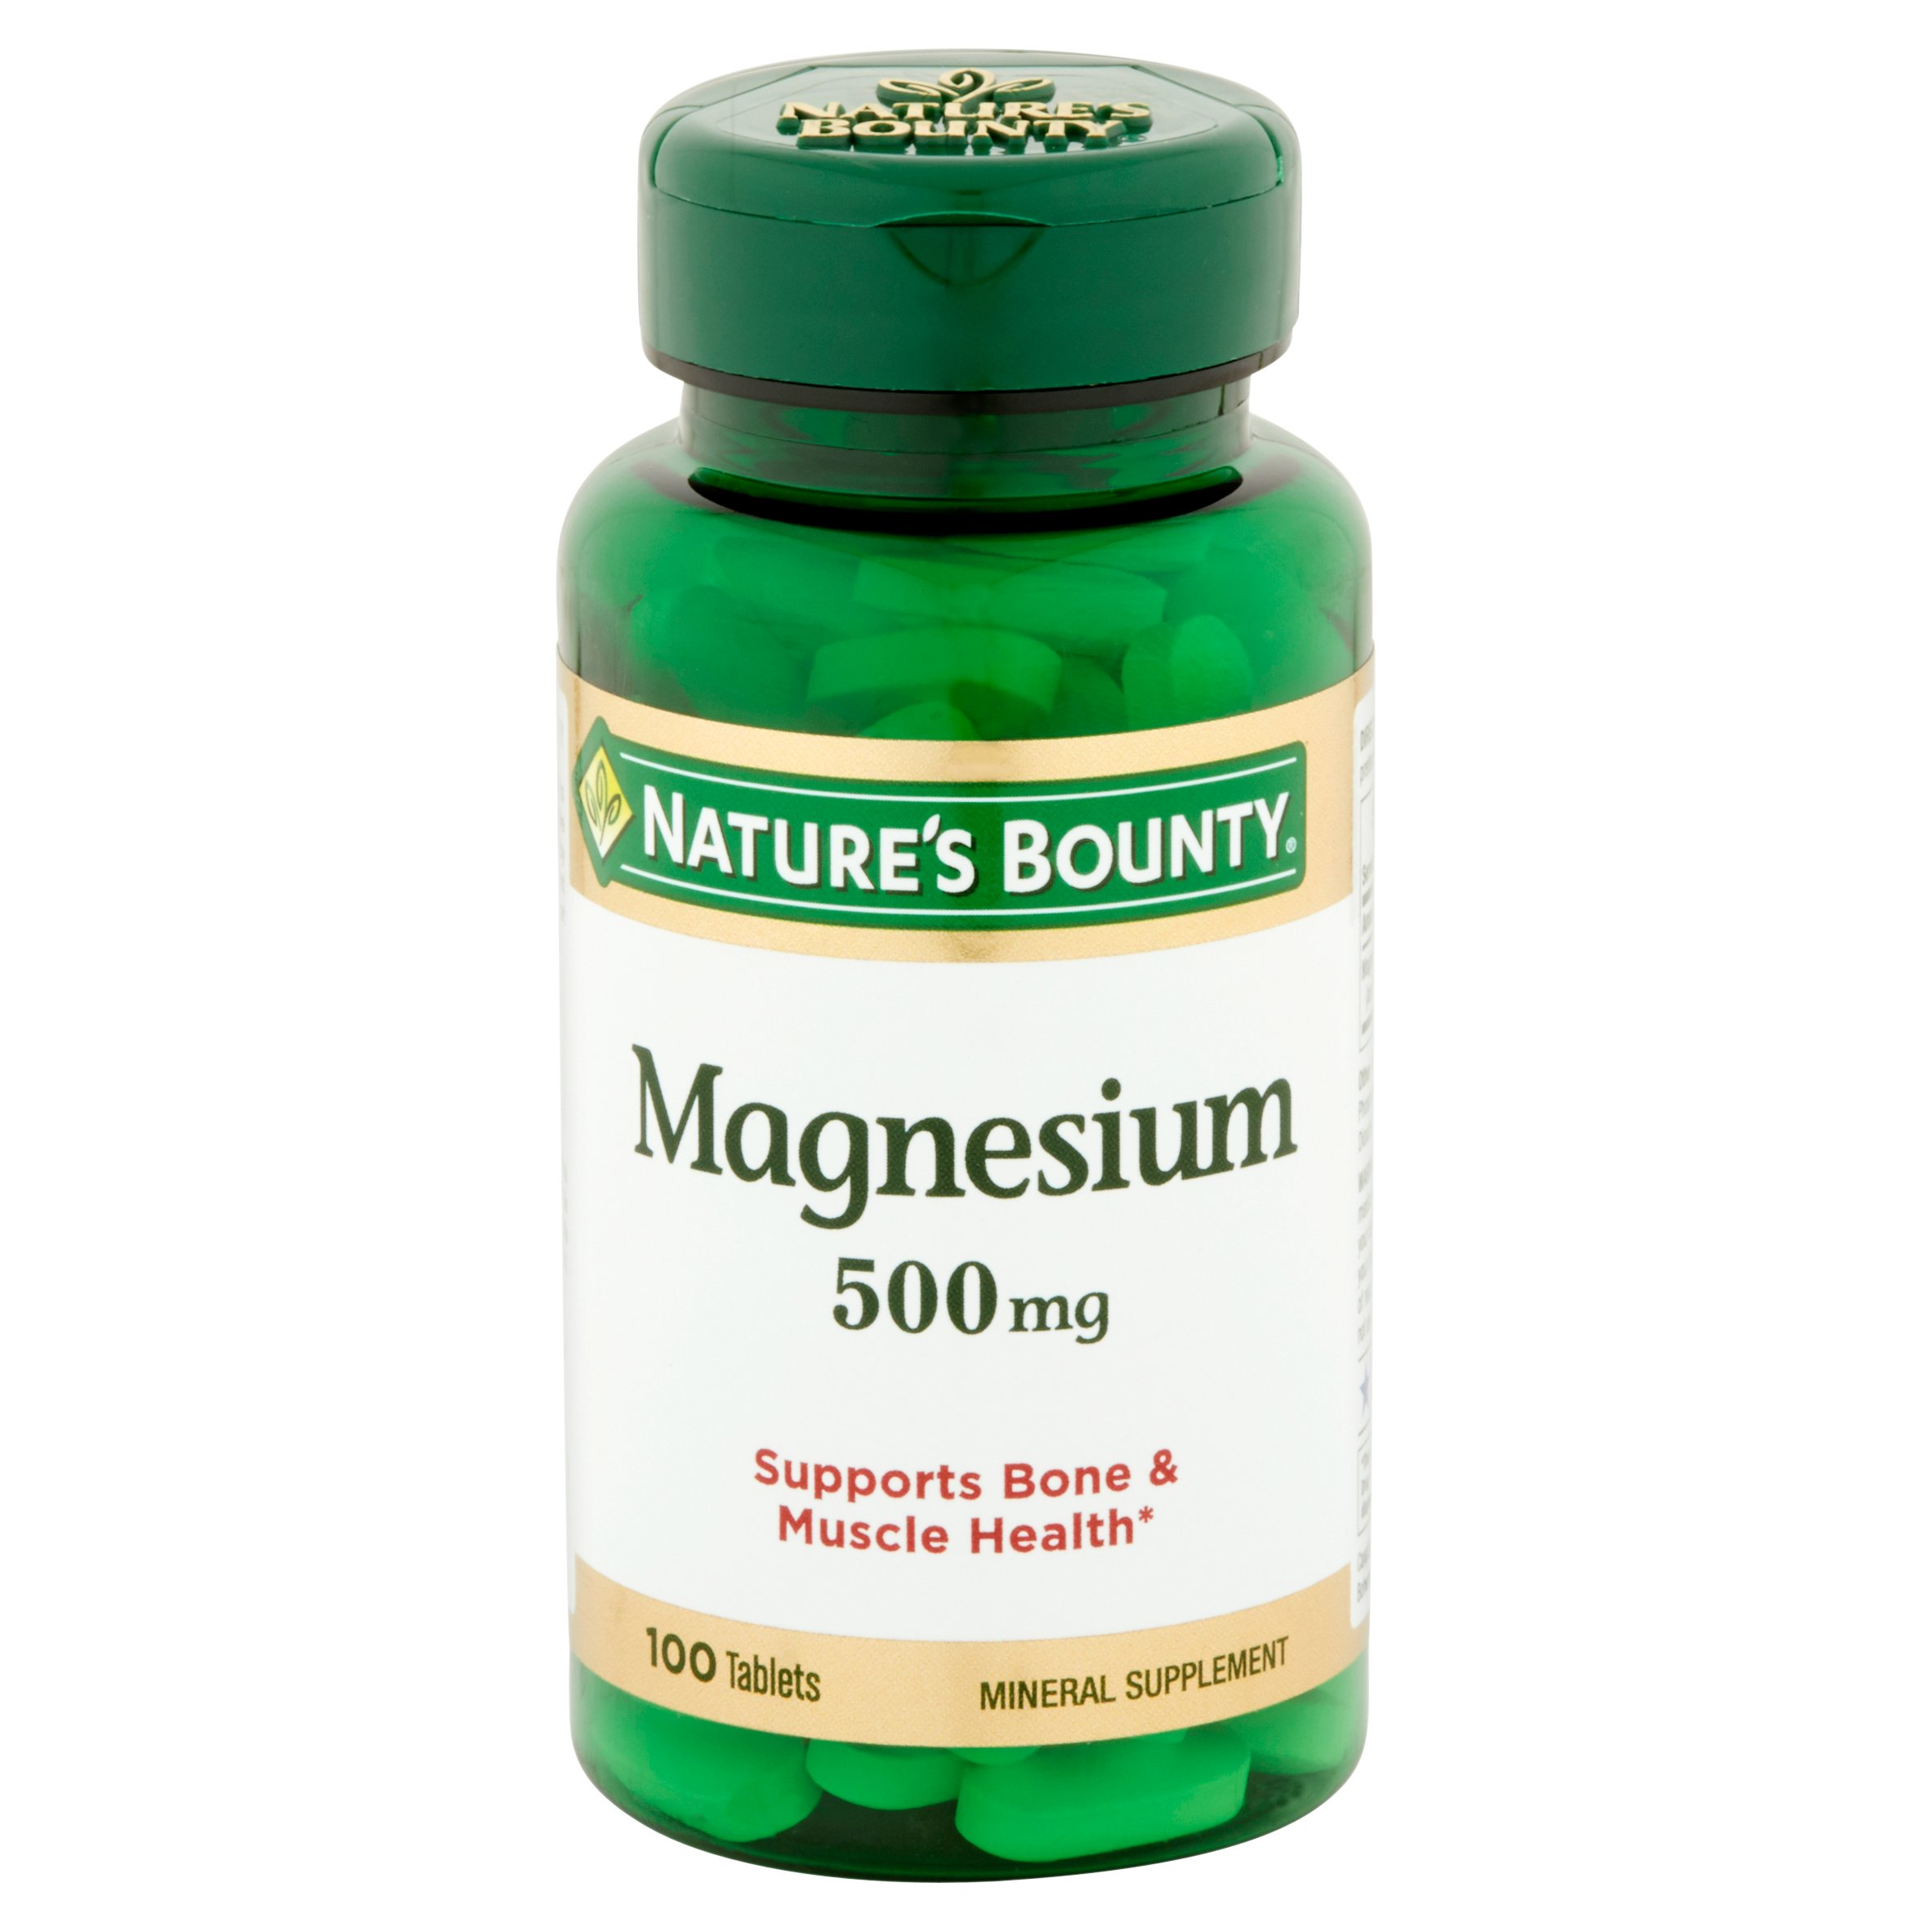 (2 Pack) Nature's Bounty Magnesium, Gluten Free, Vegetarian, Mineral Supplement, 500 mg, 100 Coated Tablets